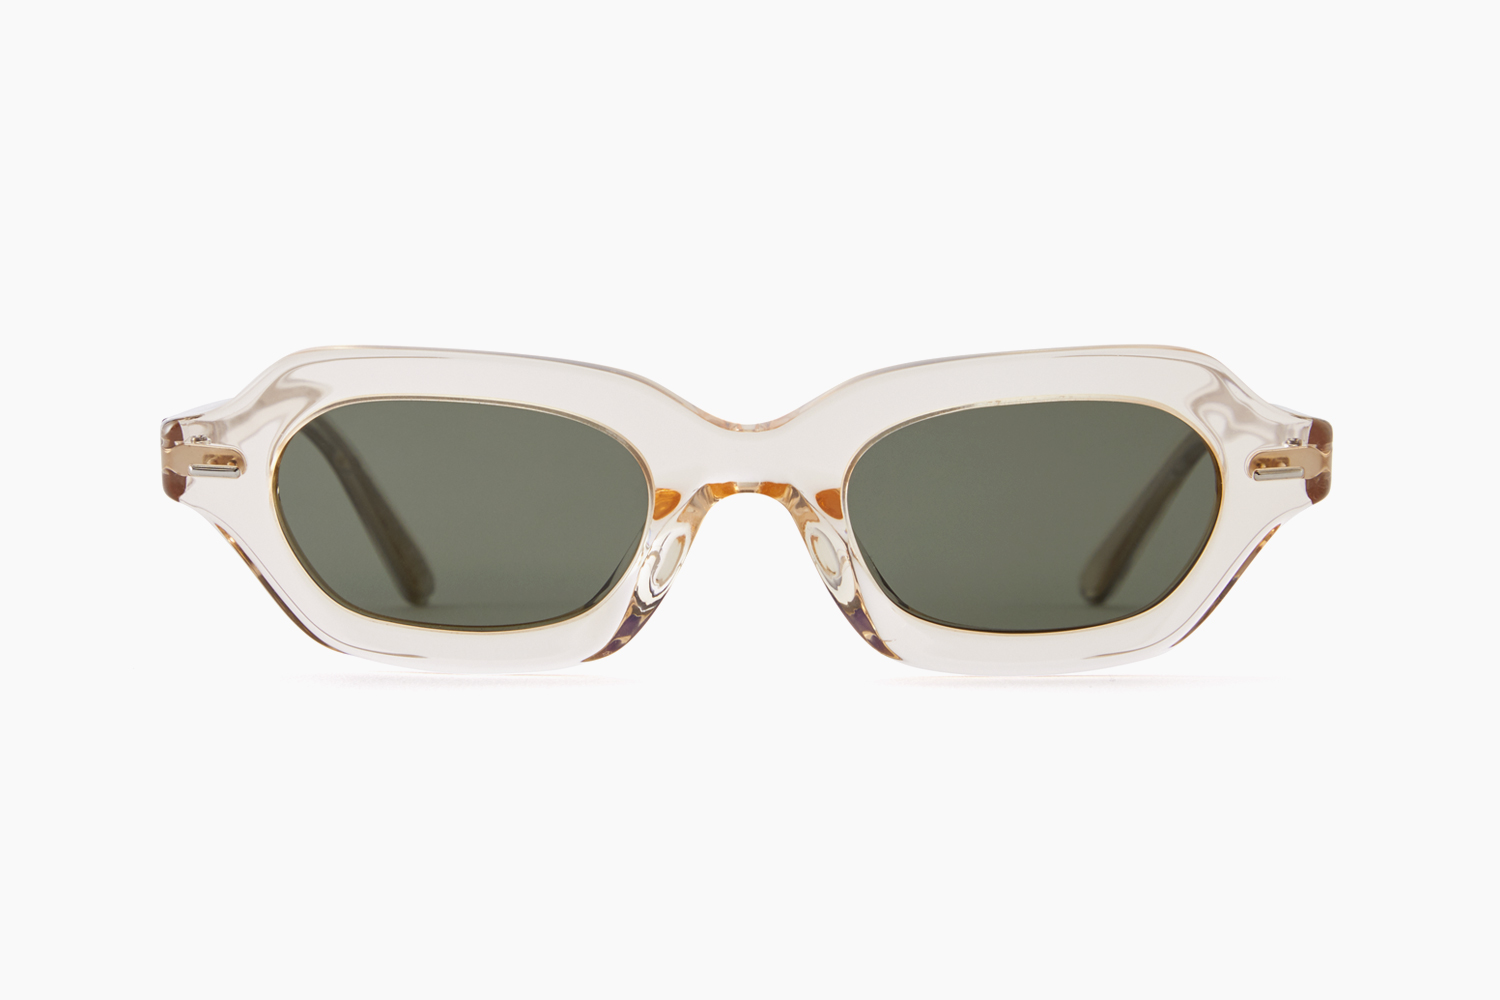 L.A. CC - 1652P1|OLIVER PEOPLES